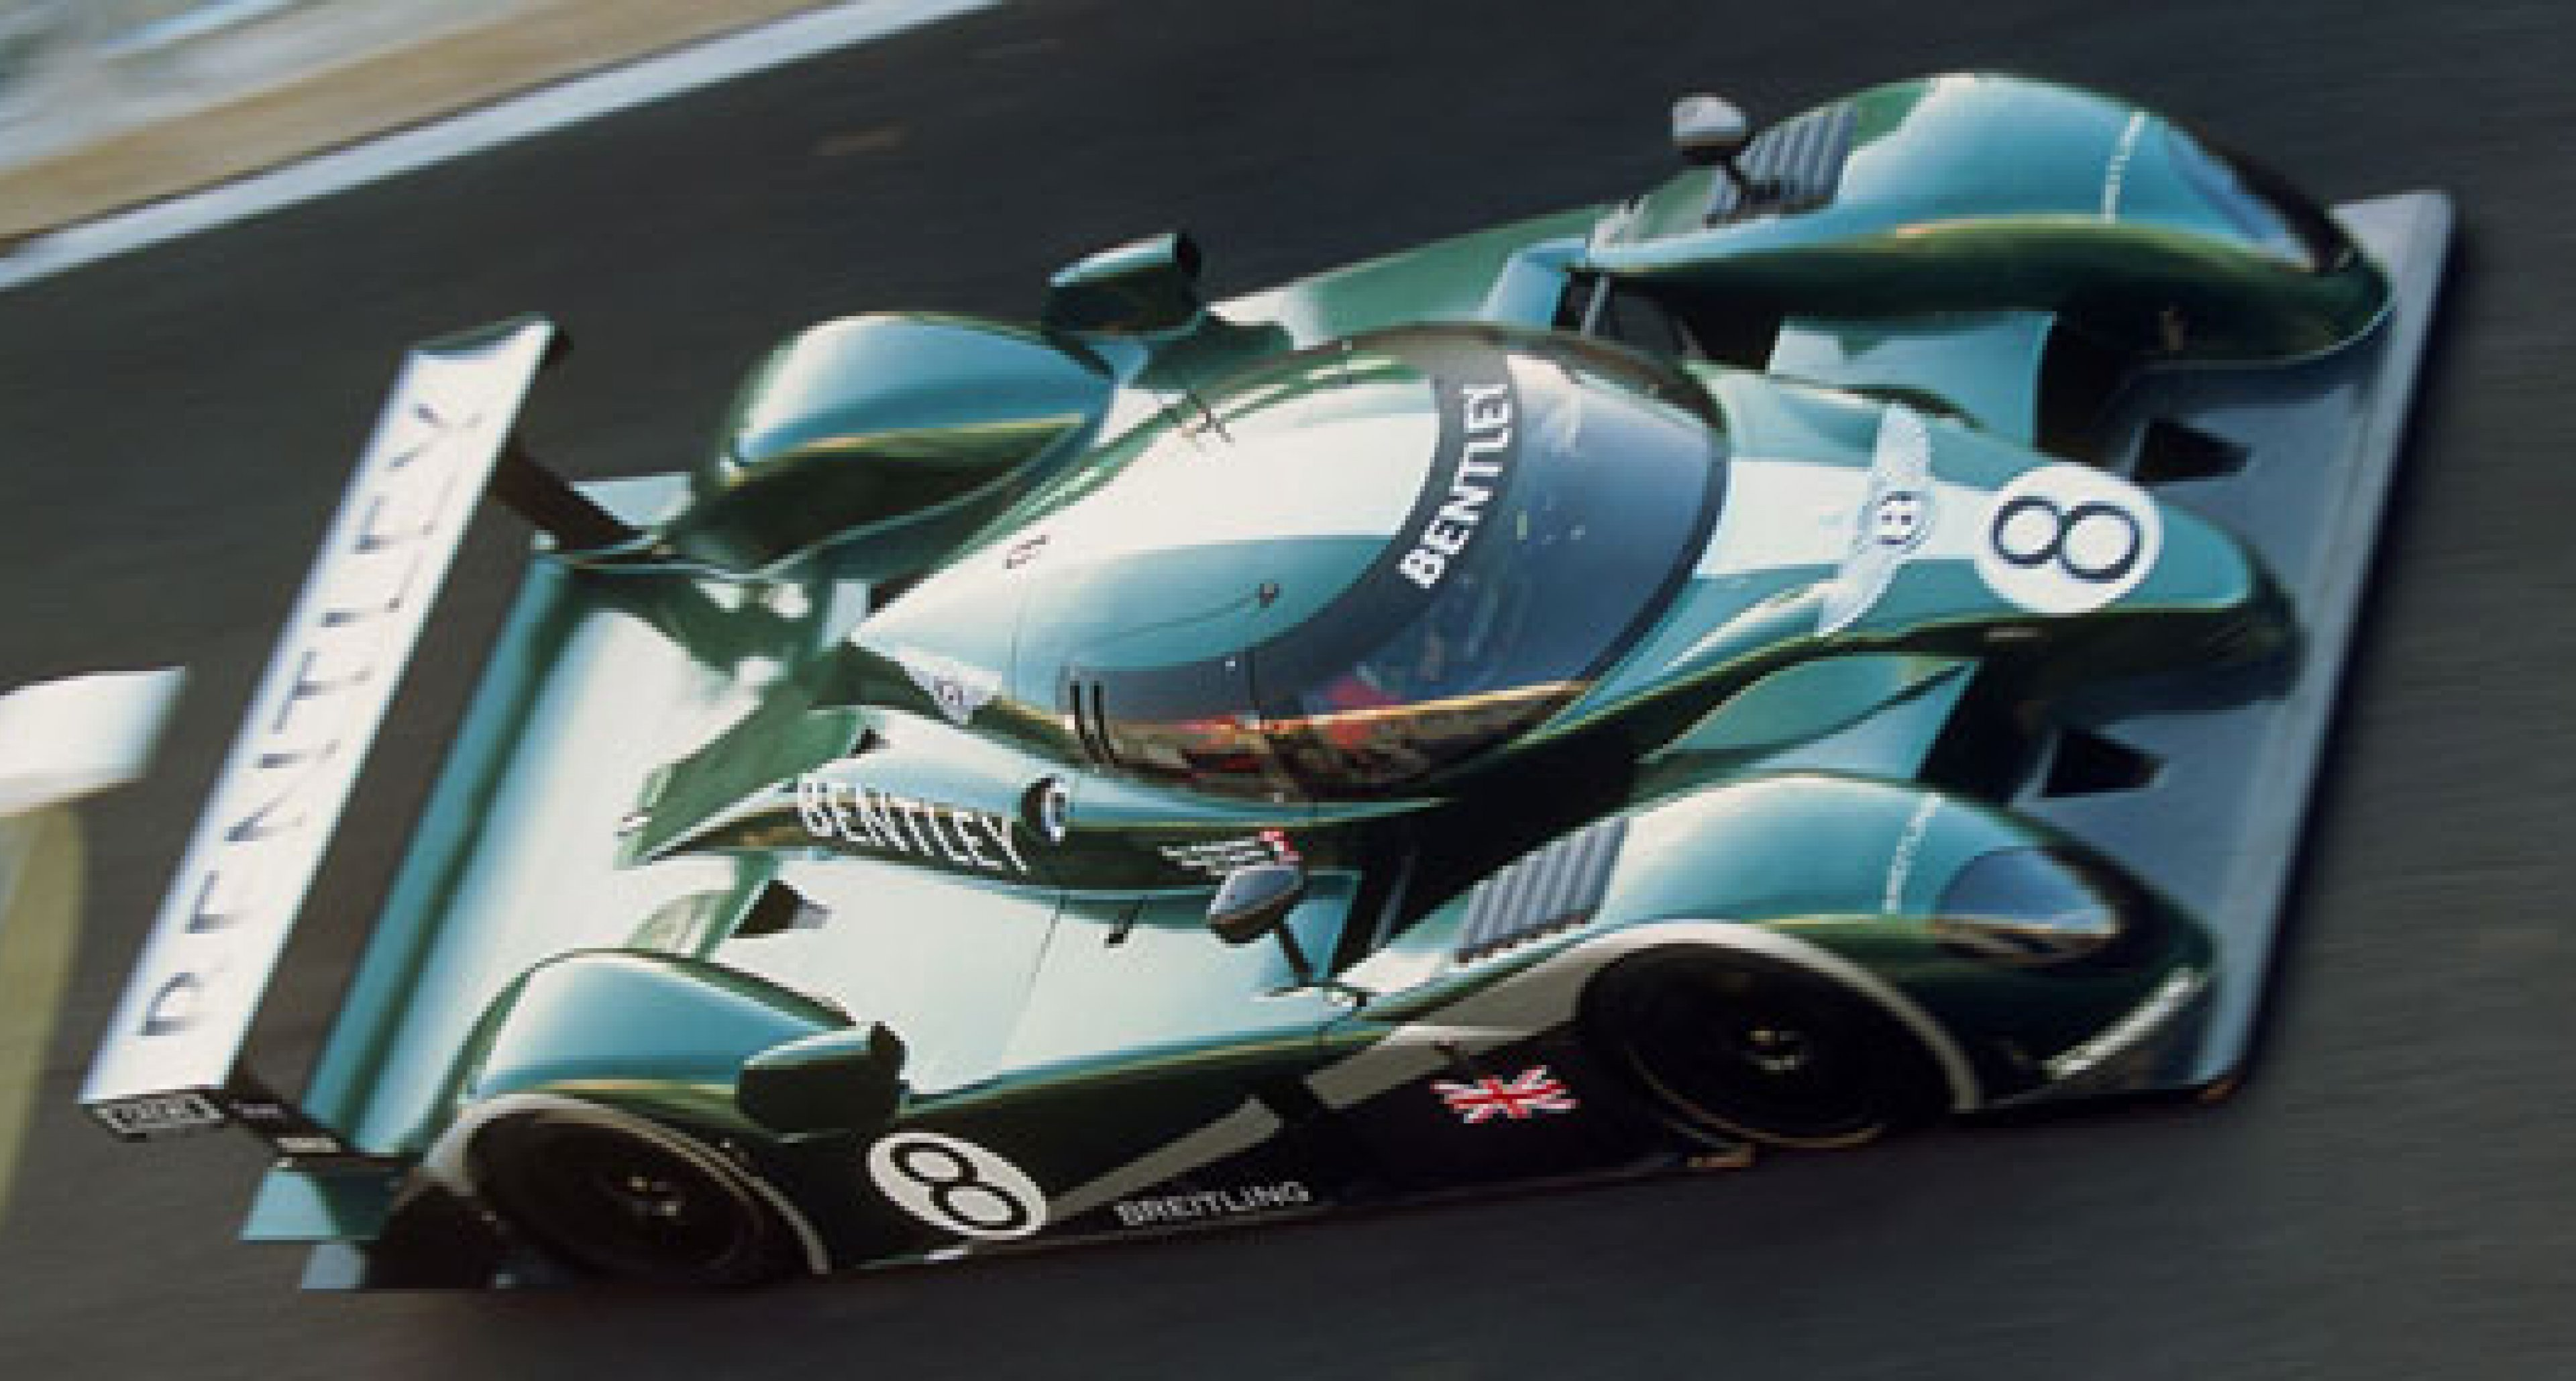 Team Bentley in 2003 - from Sebring to Le Mans